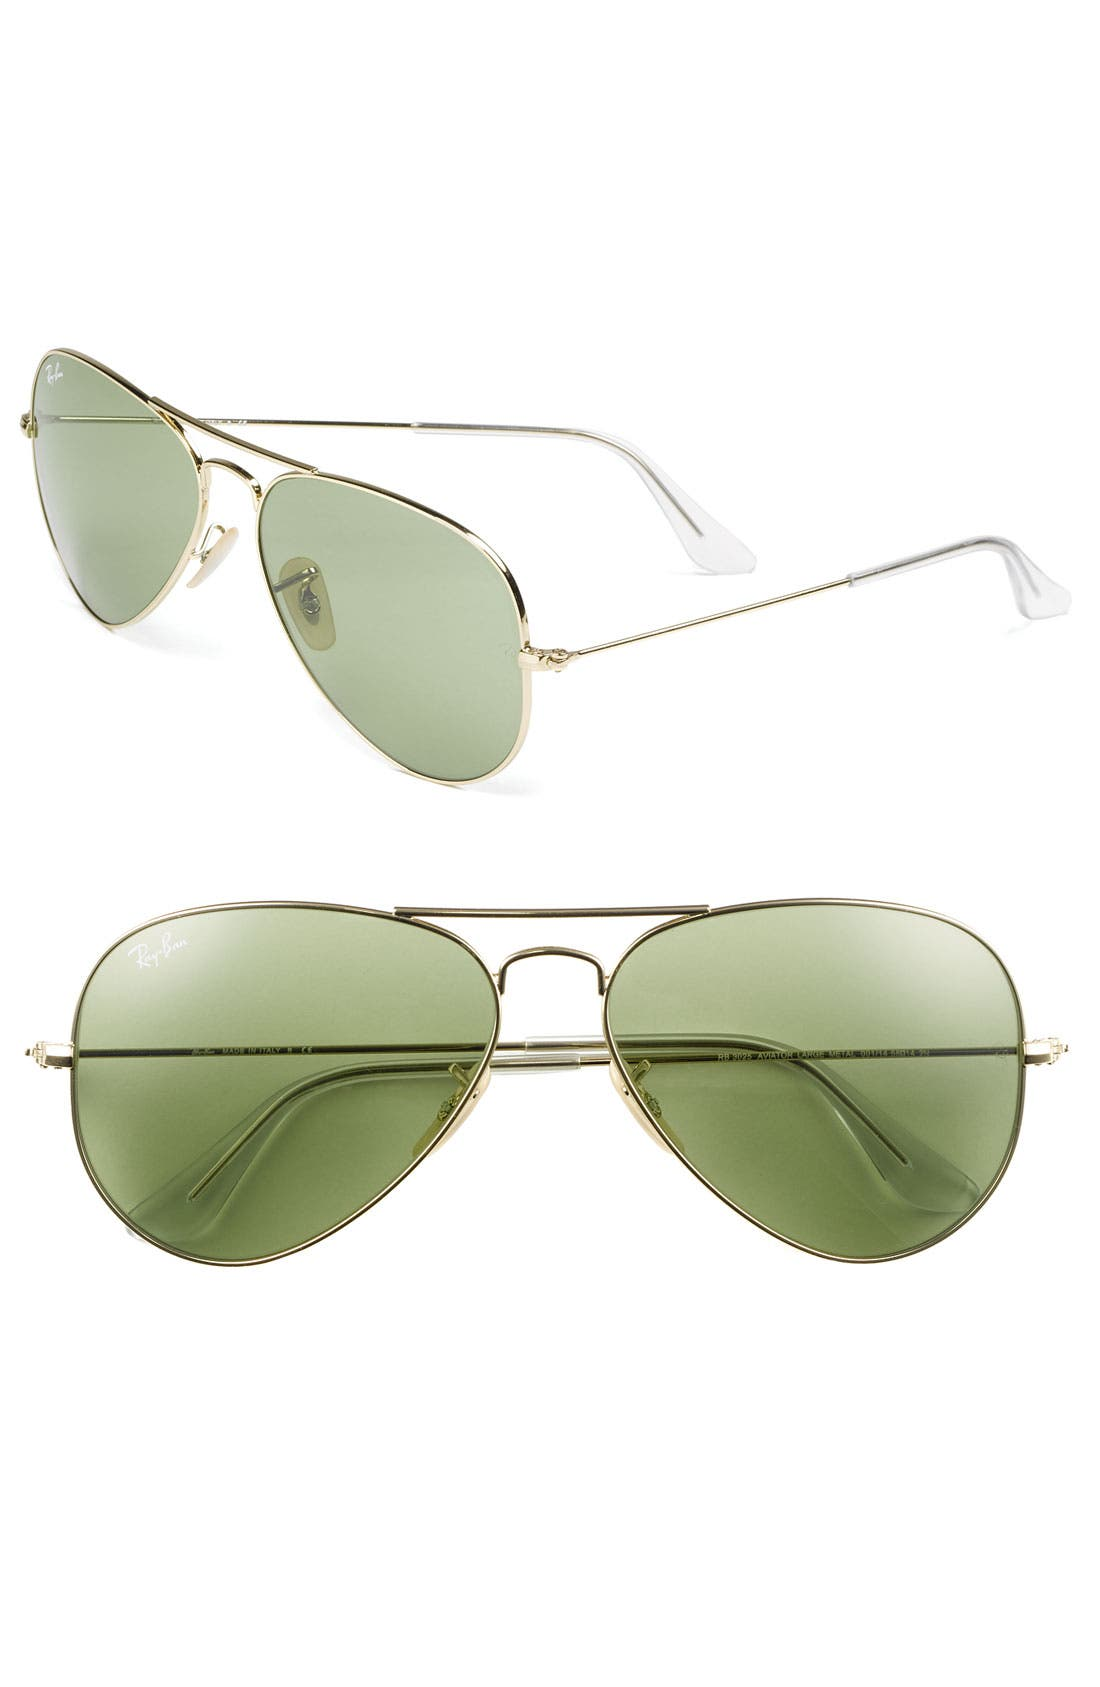 Main Image - Ray-Ban 'Legend Collection' 58mm Aviator Sunglasses